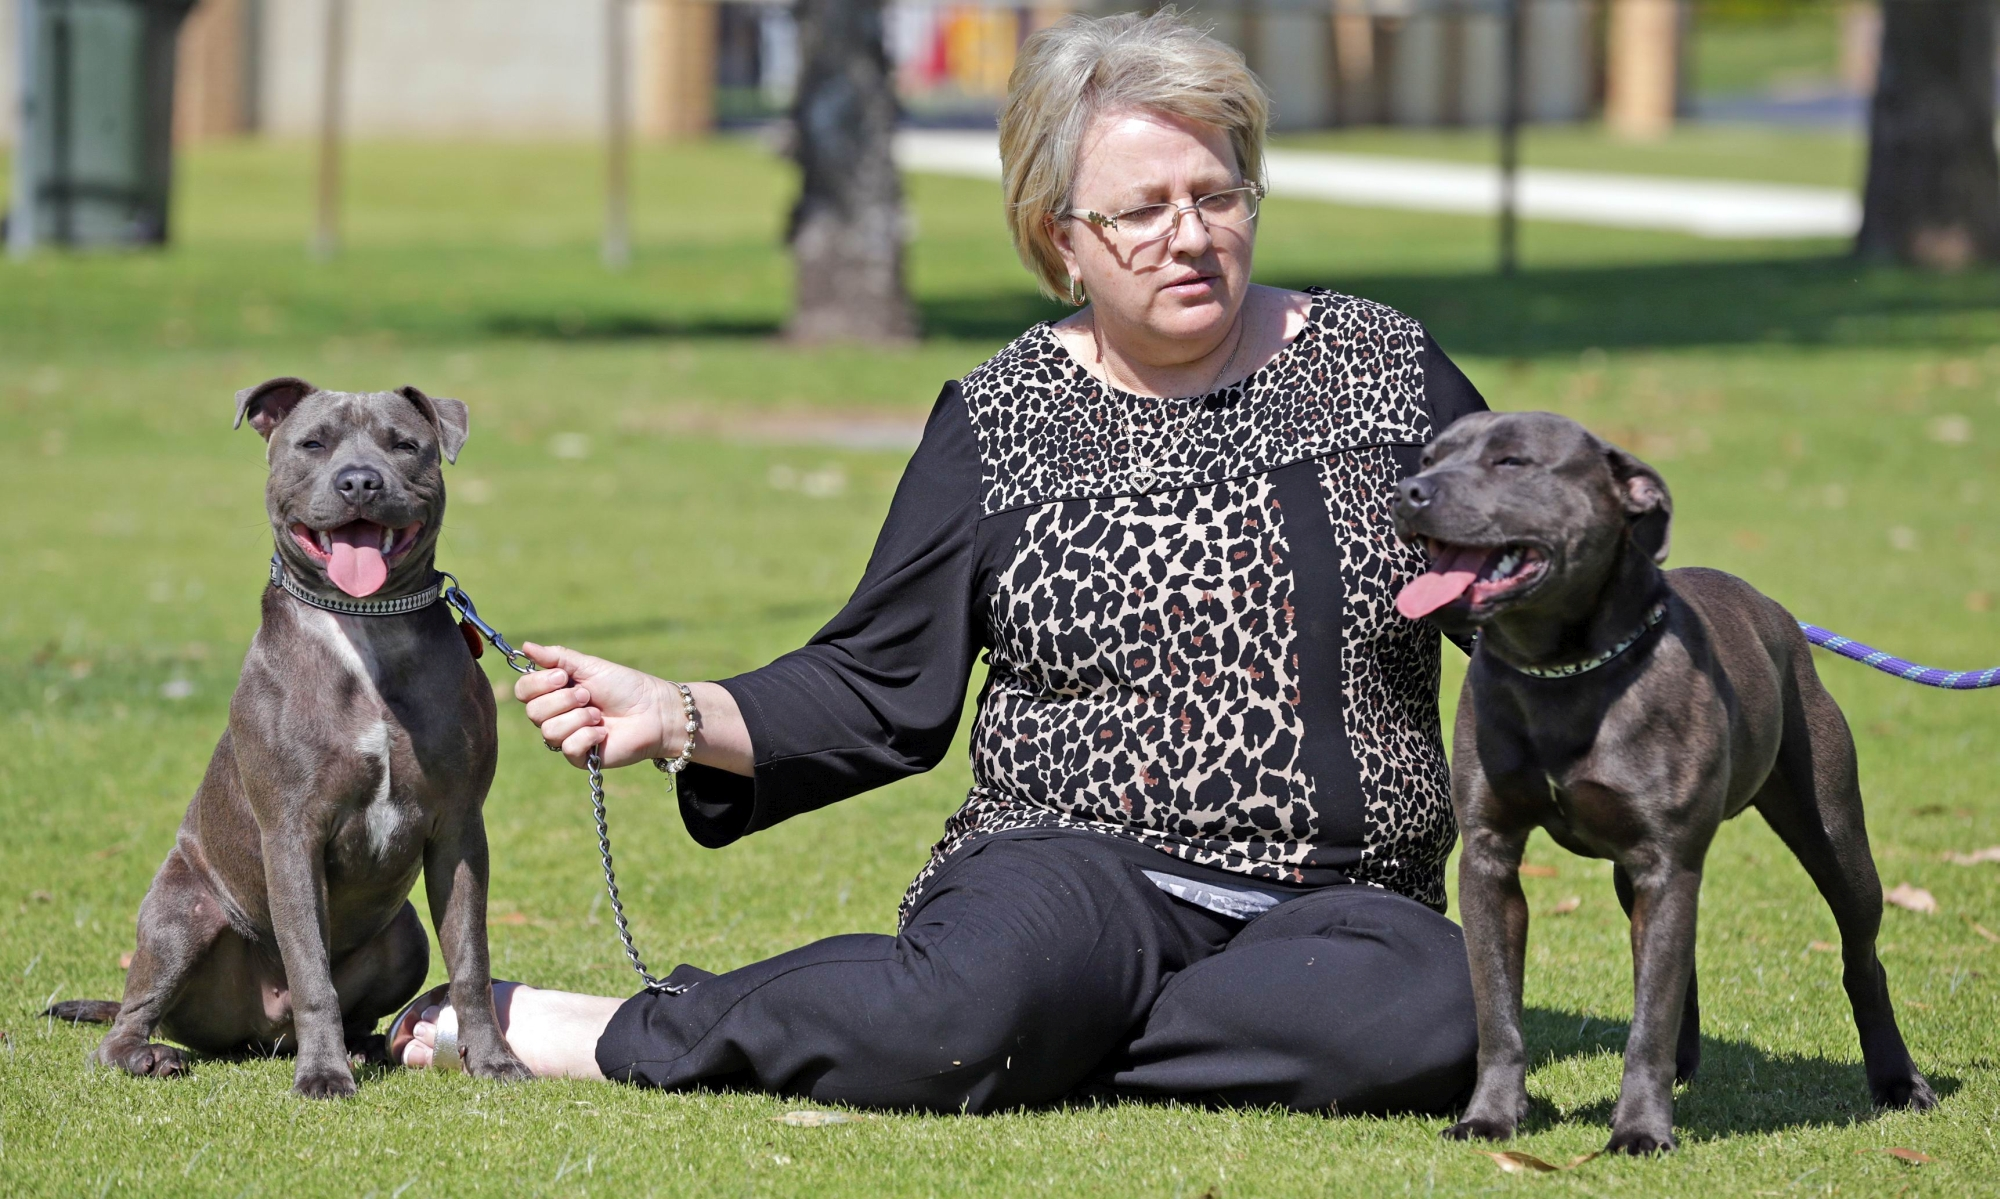 Ingrid Pietroniro with her dogs Tyson and Riley. Tyson was stolen from her back yard in February but was found on the street and identified by his microchip.